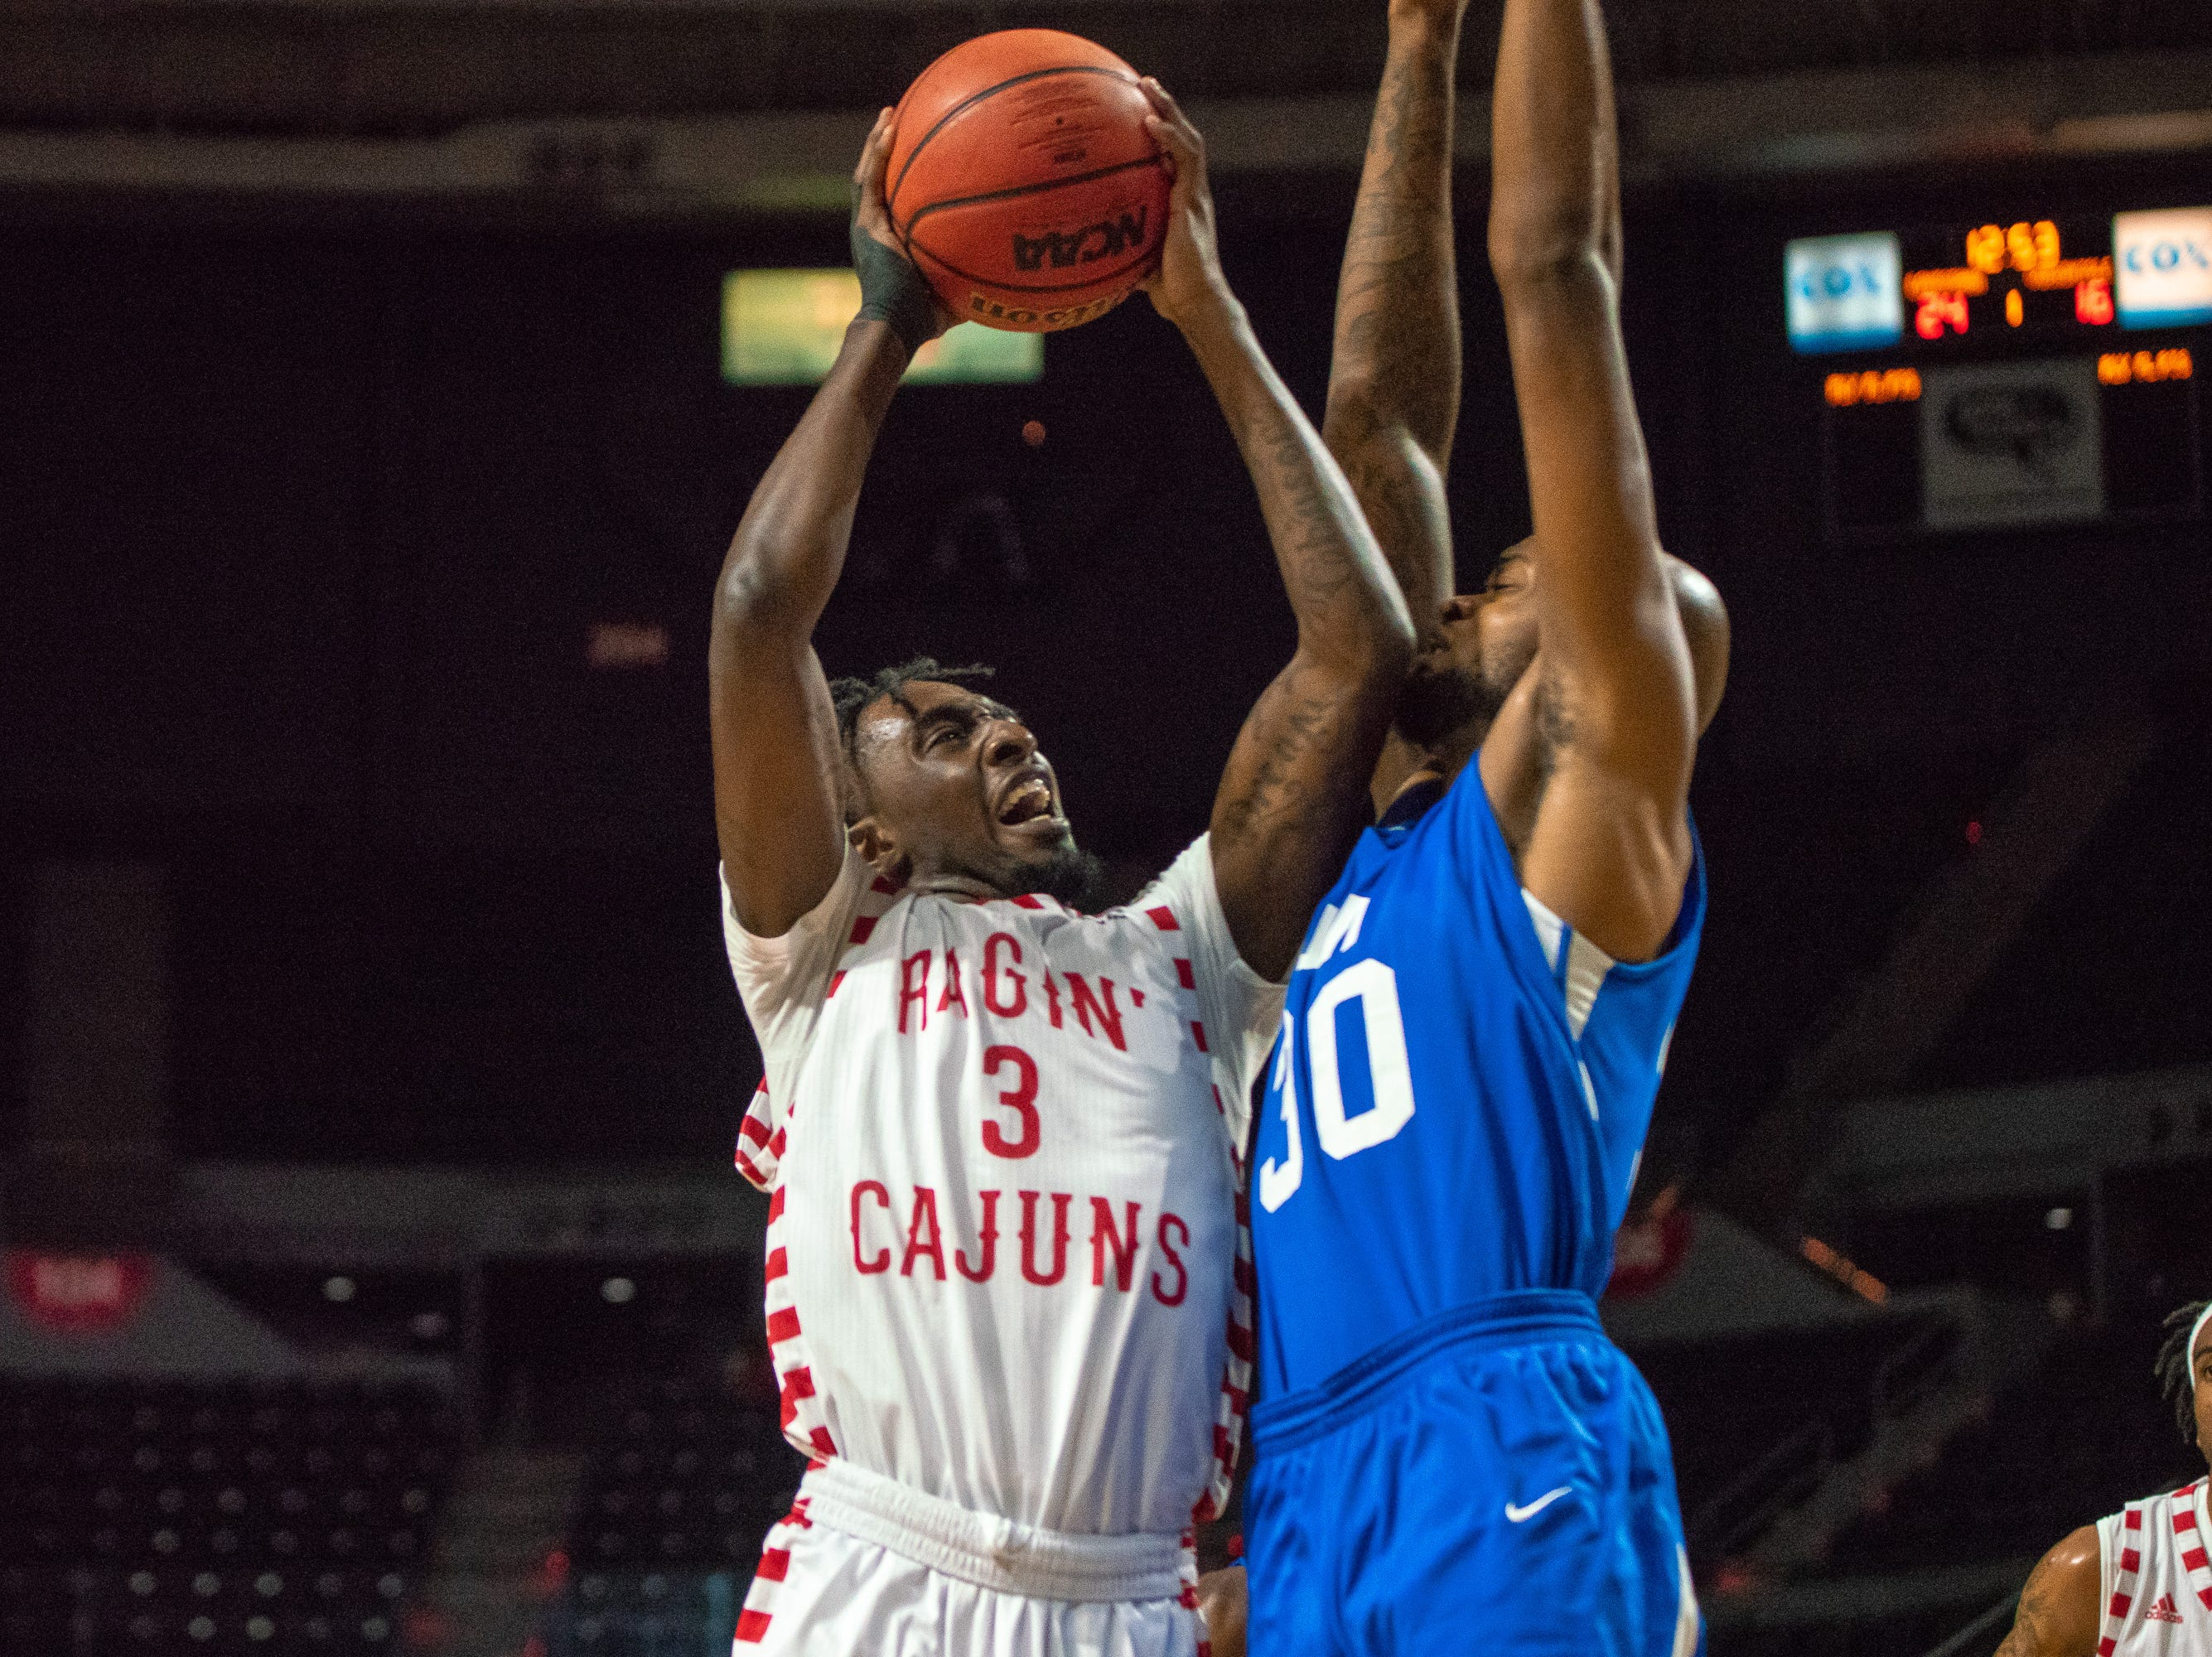 UL's Jeremy Hayes jumps up to the goal to score as the Ragin' Cajuns take on the University of the Virgin Islands Buccaneers at the Cajundome on Nov. 6, 2018.